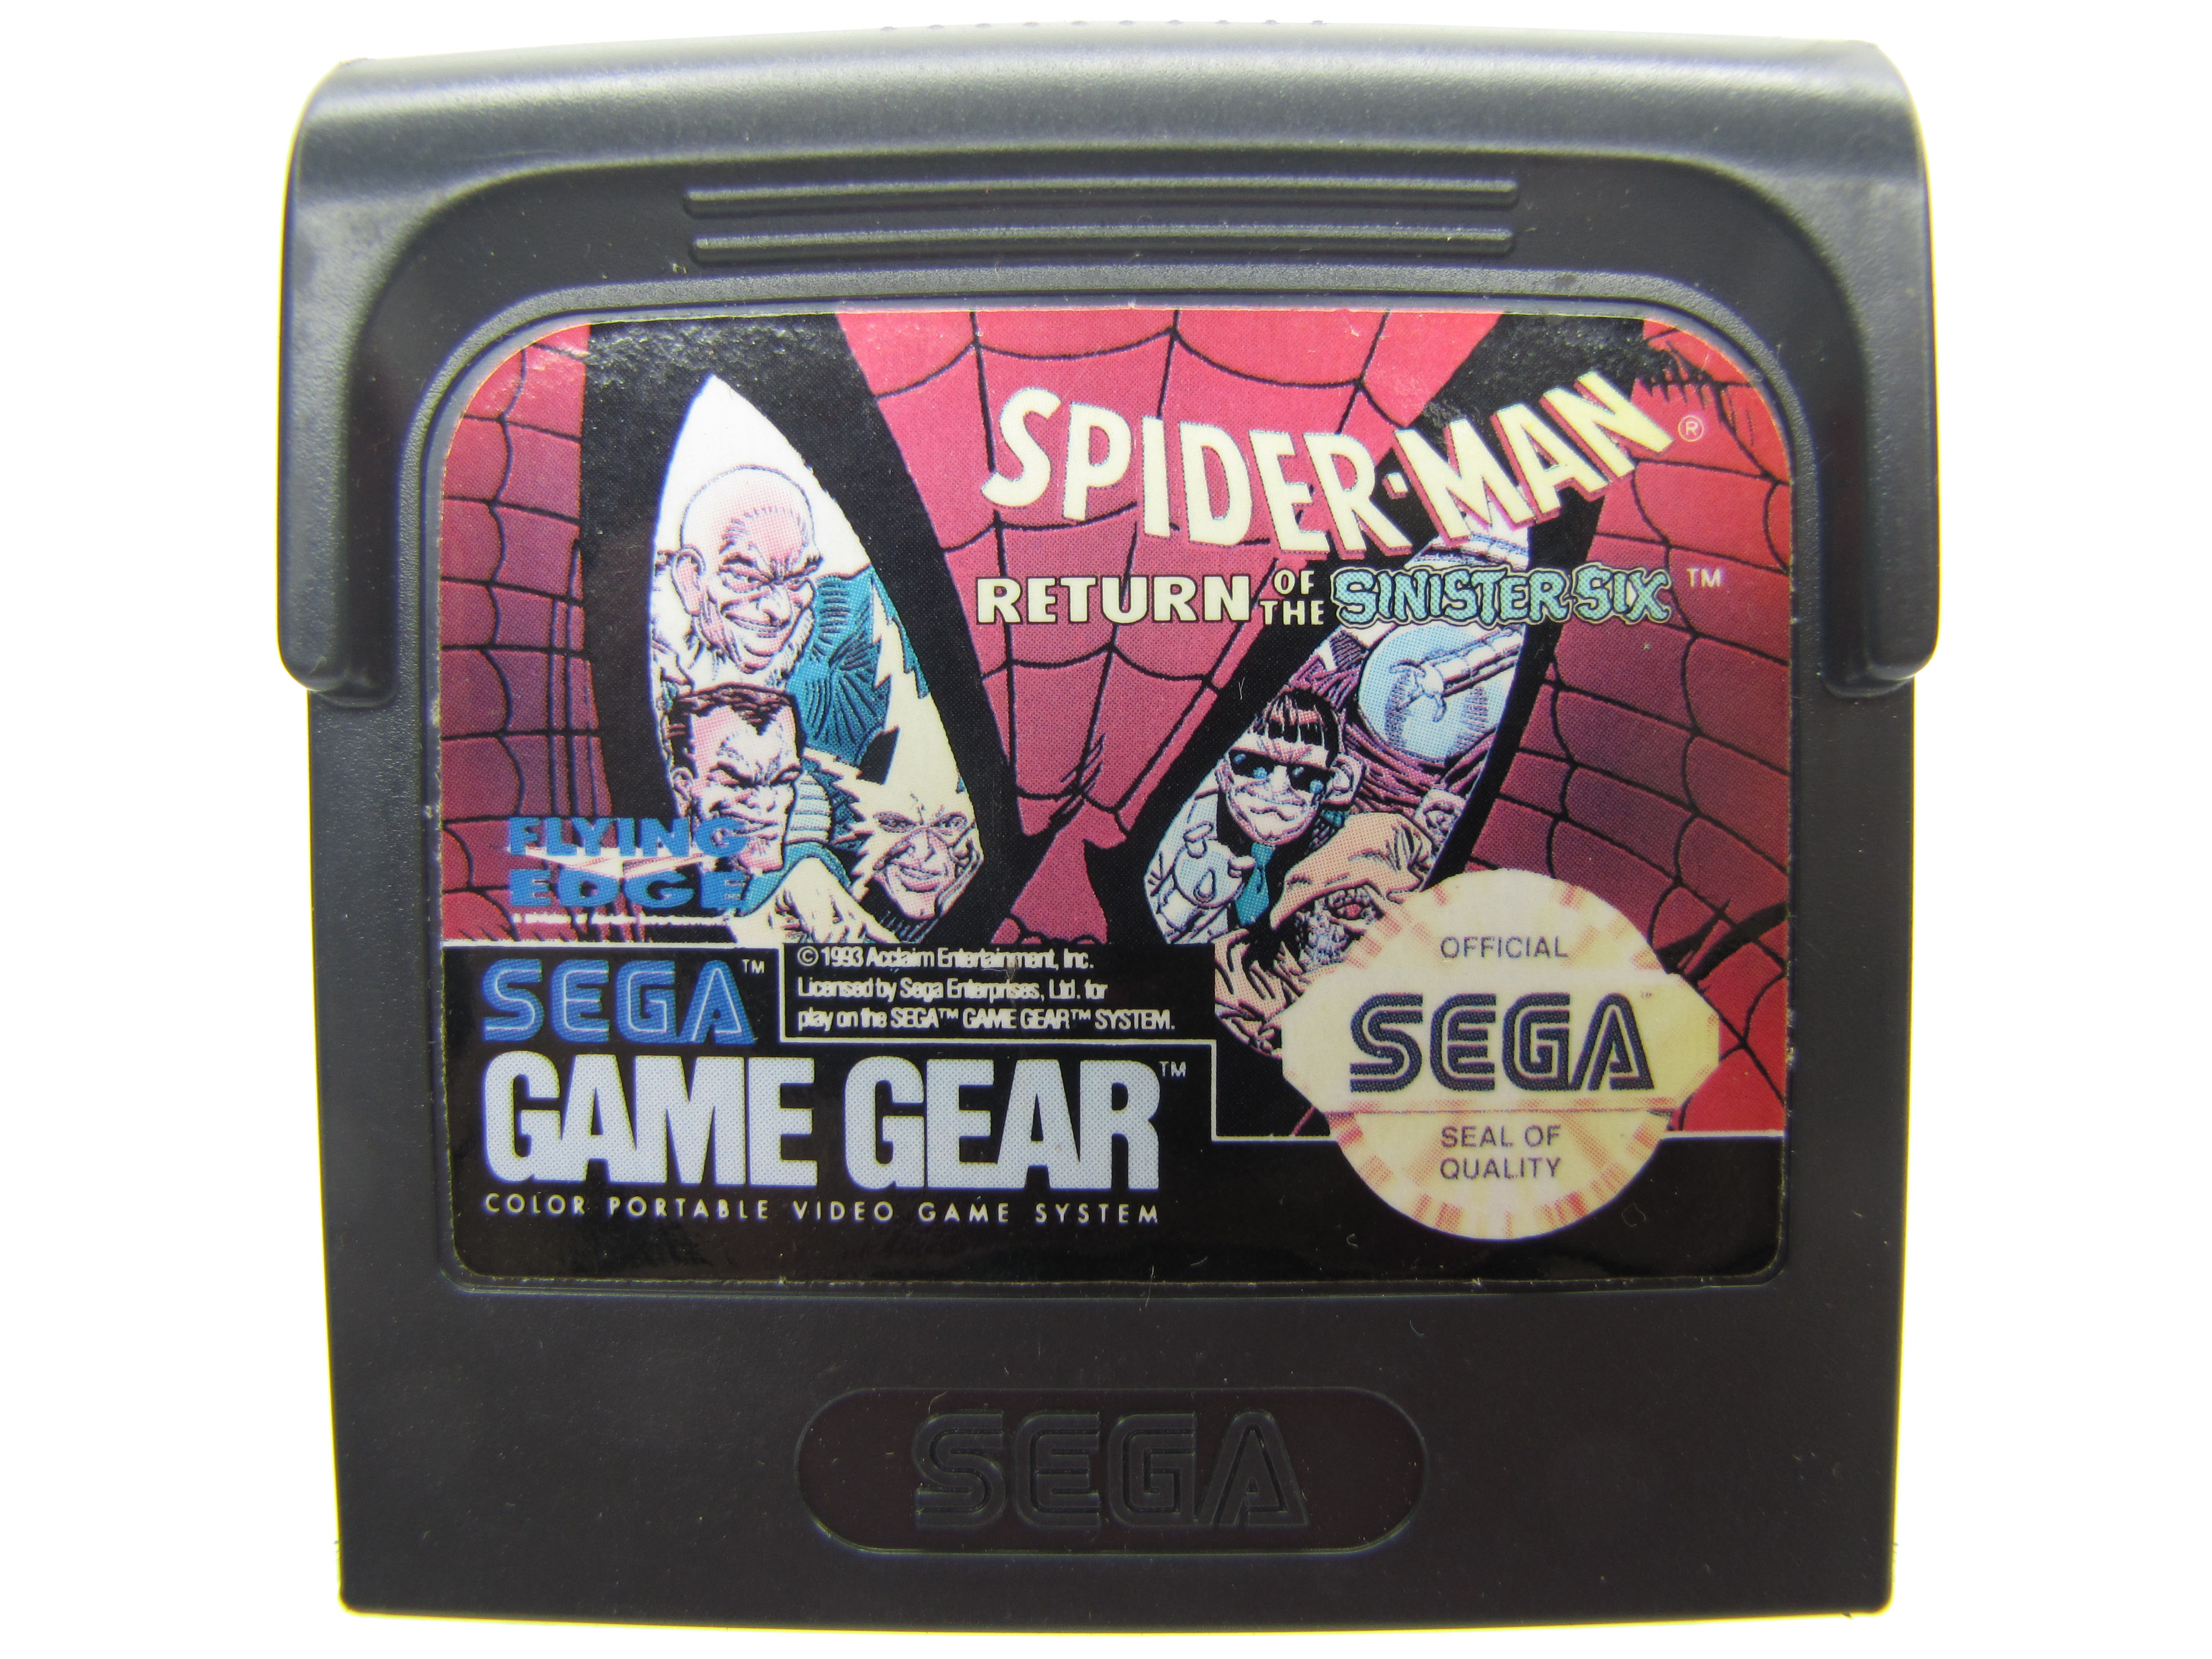 Sega Game Gear Spider-Man: Return of the Sinister Six - 1993